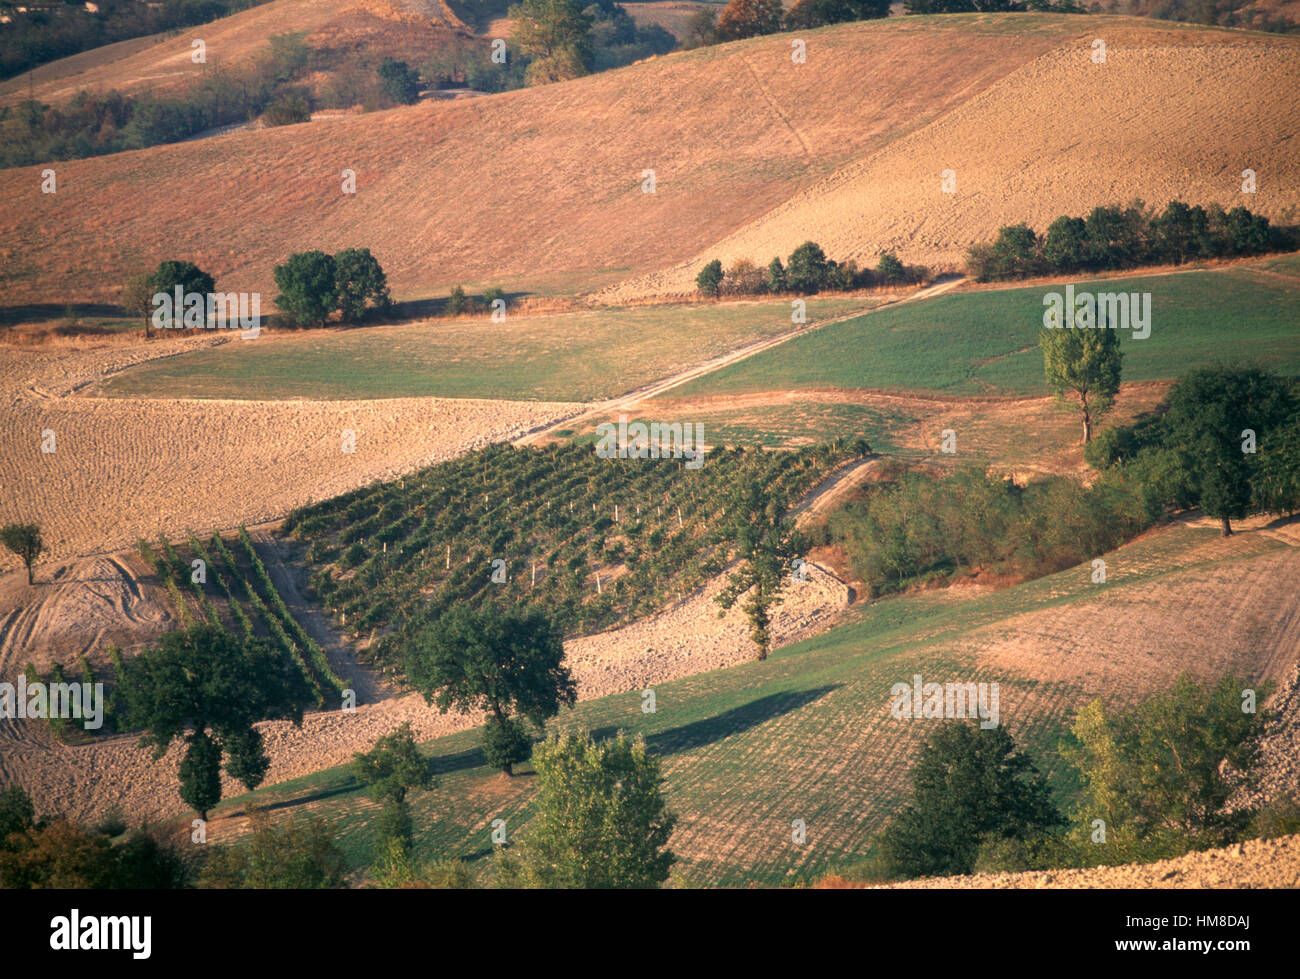 Agricultural landscape between Castel San Pietro Terme and Sassoleone, Emilia-Romagna, Italy. - Stock Image